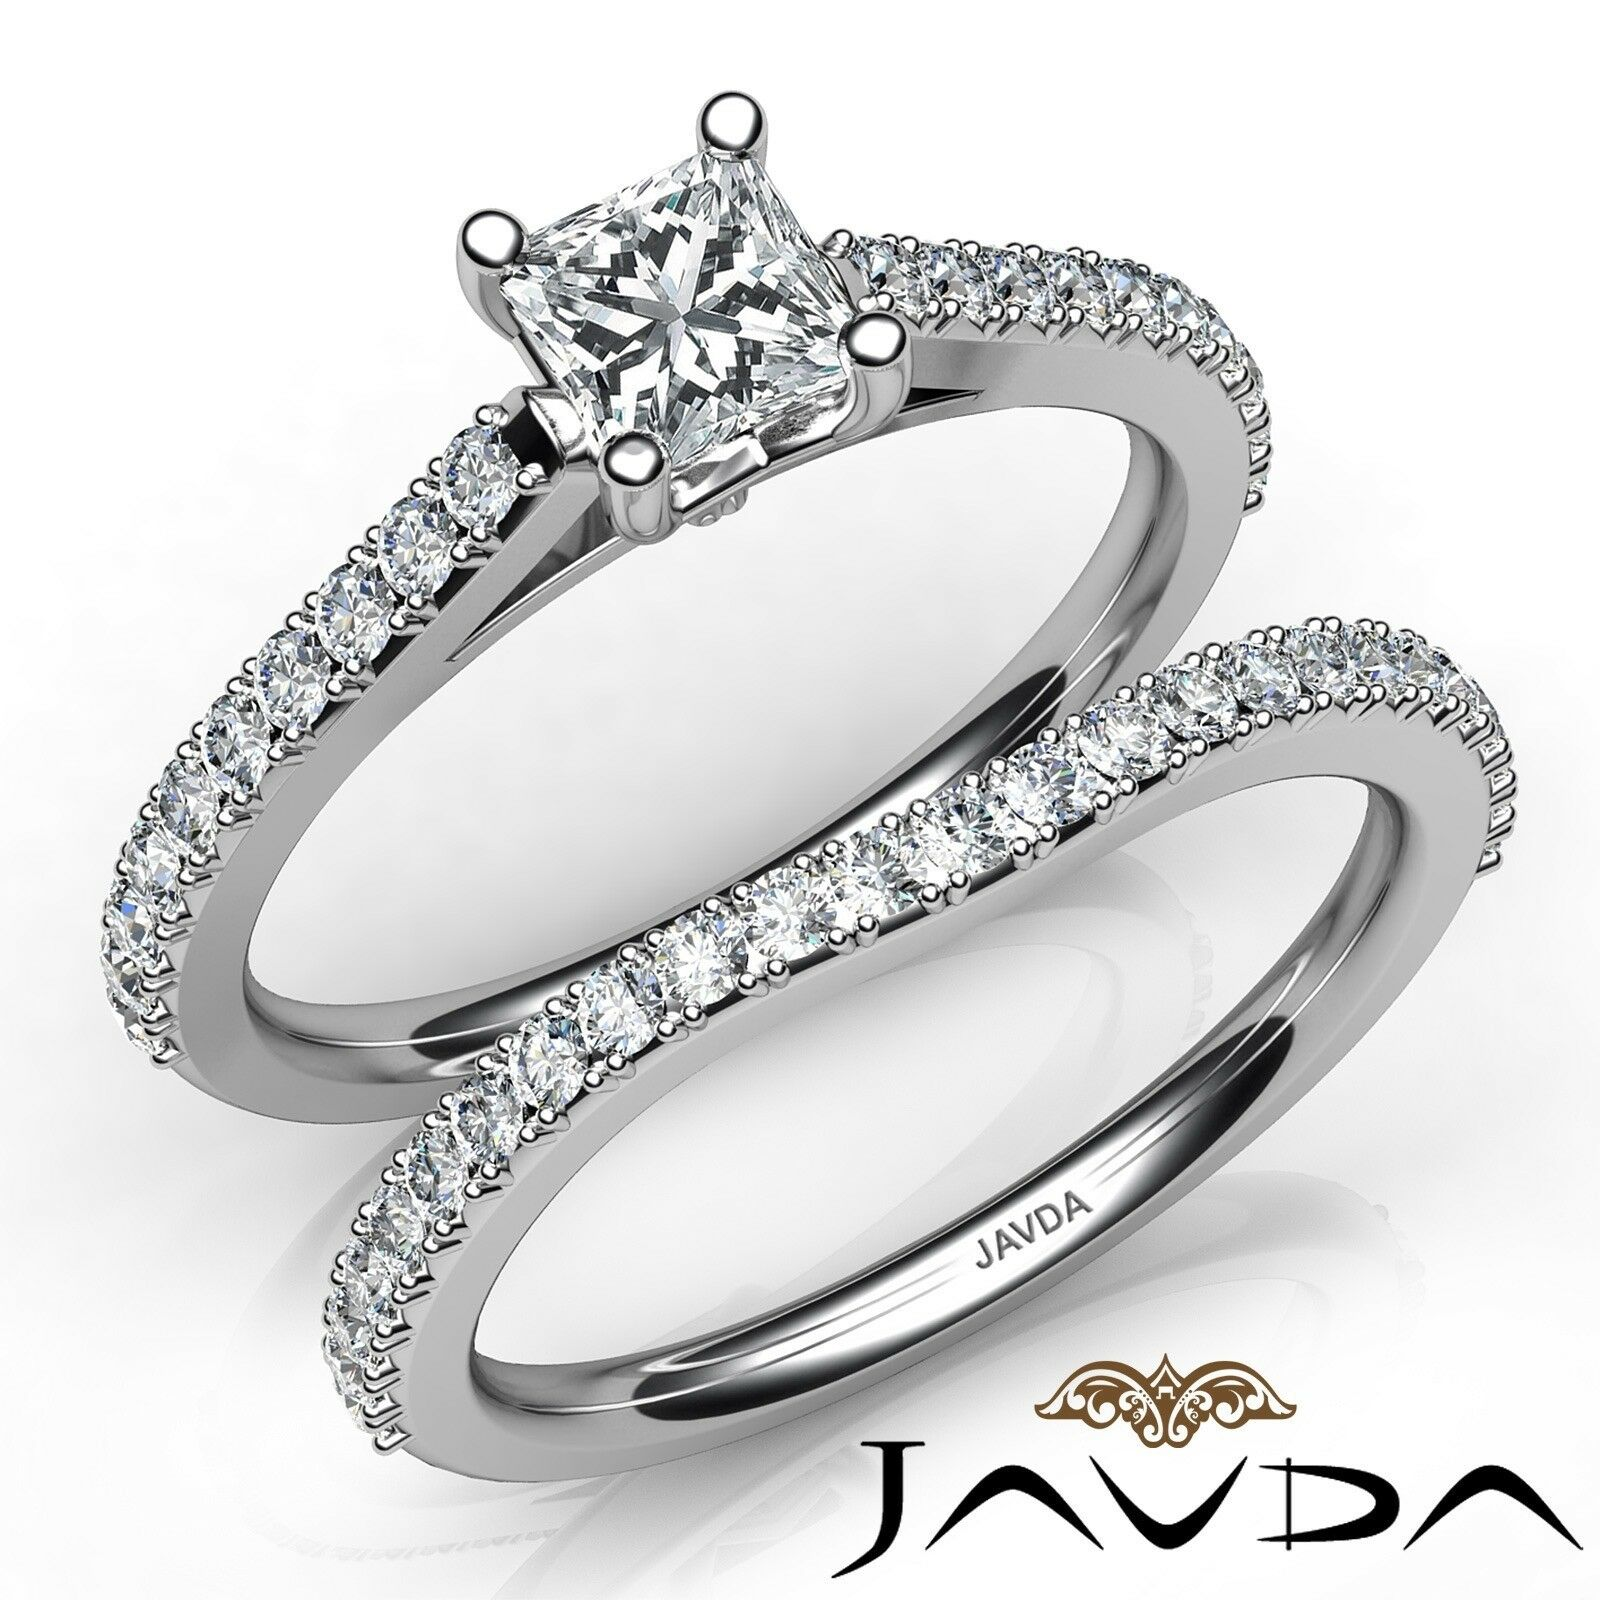 1.45ctw Matching Wedding Bridal Set Princess Diamond Engagement Ring GIA J-SI2